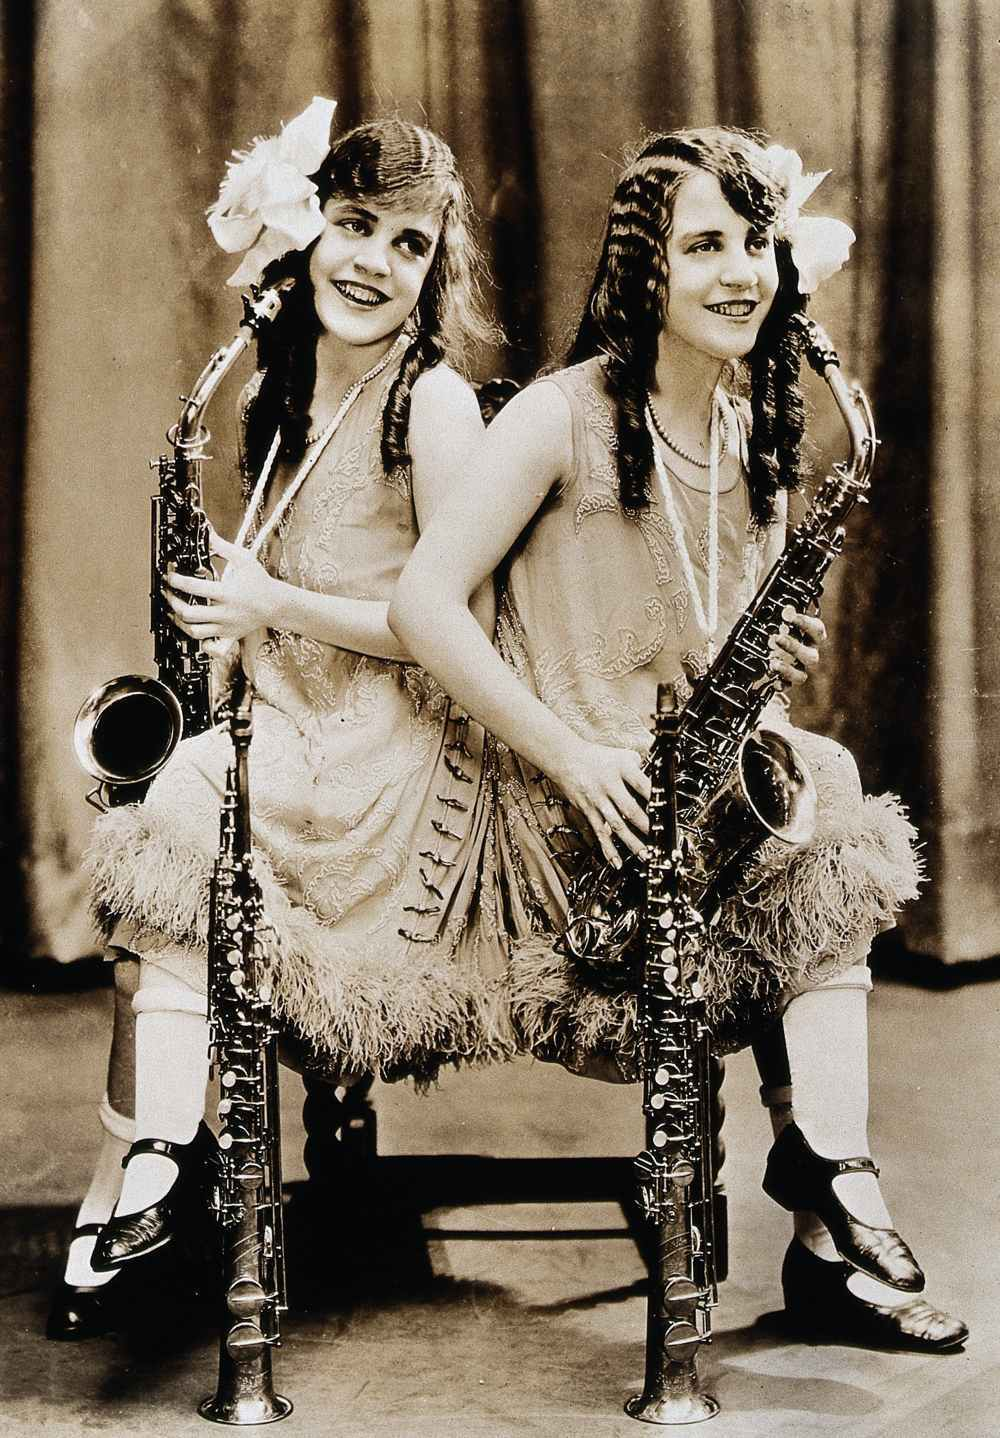 Daisy and Violet Hilton, conjoined twins, with saxophones